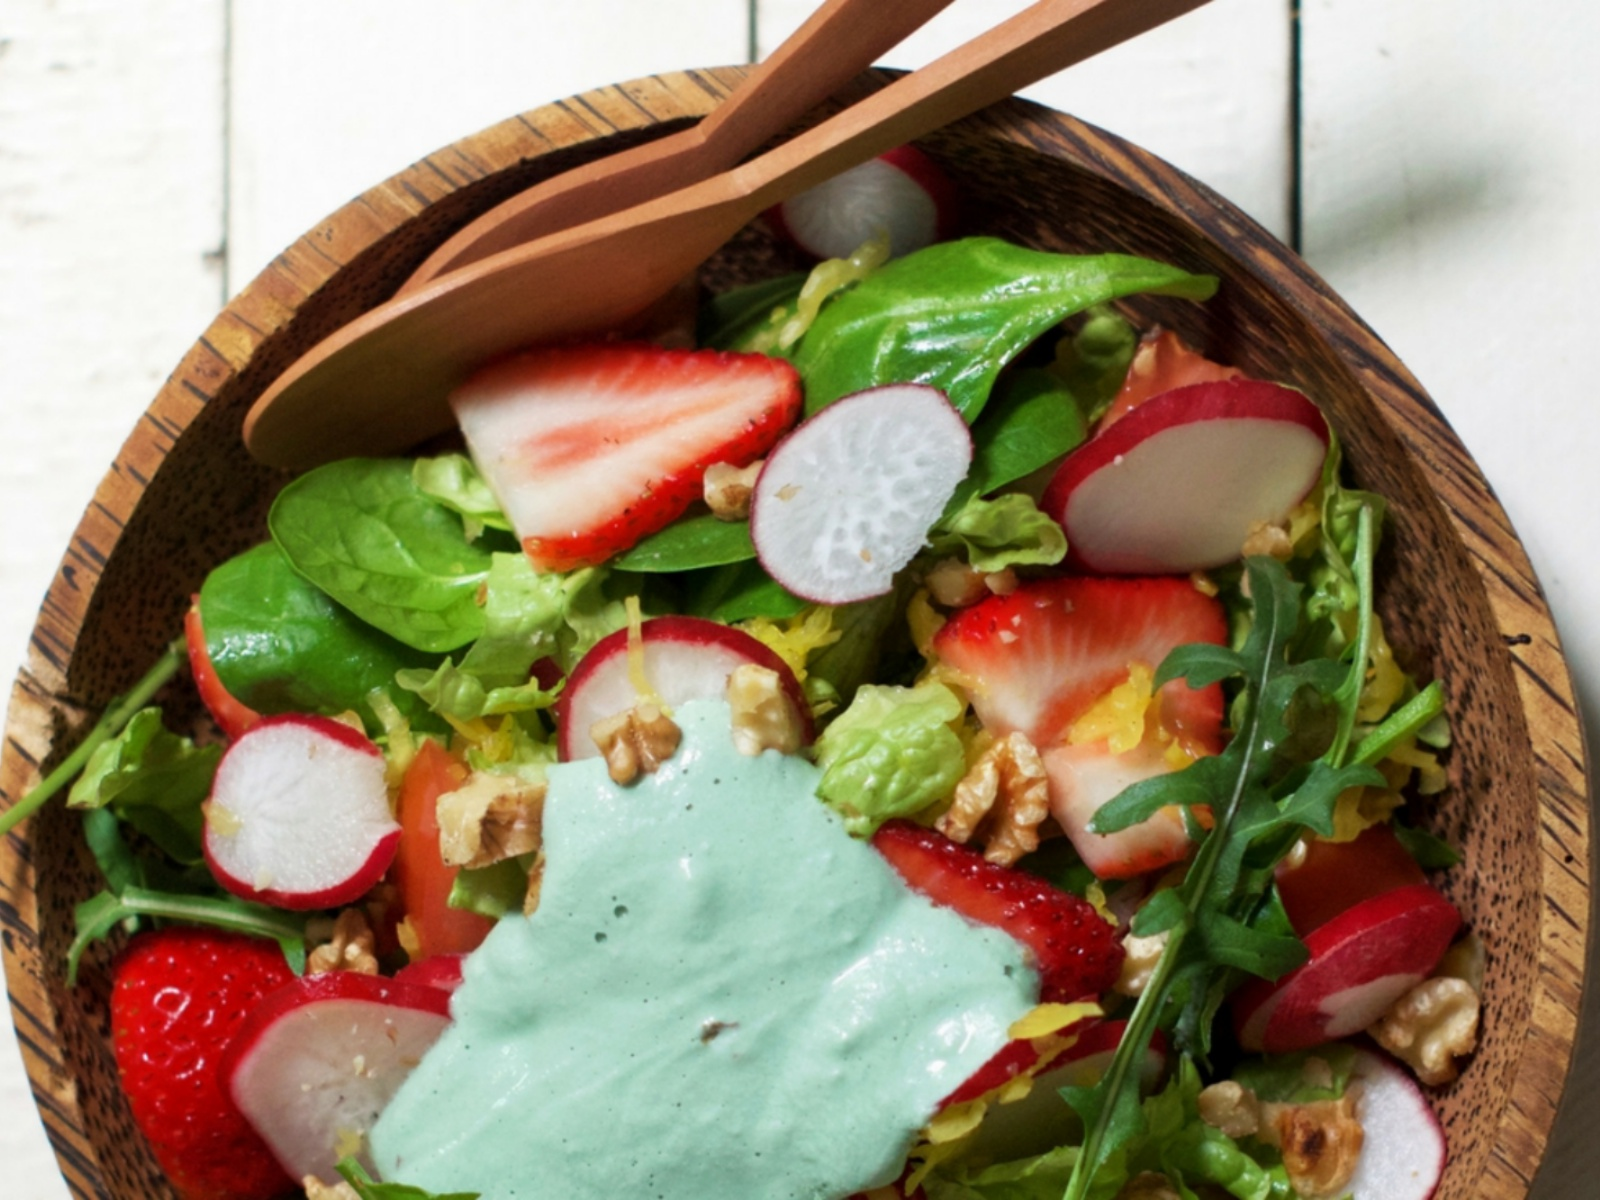 Strawberry and Radish Salad with Green Superfood Dressing